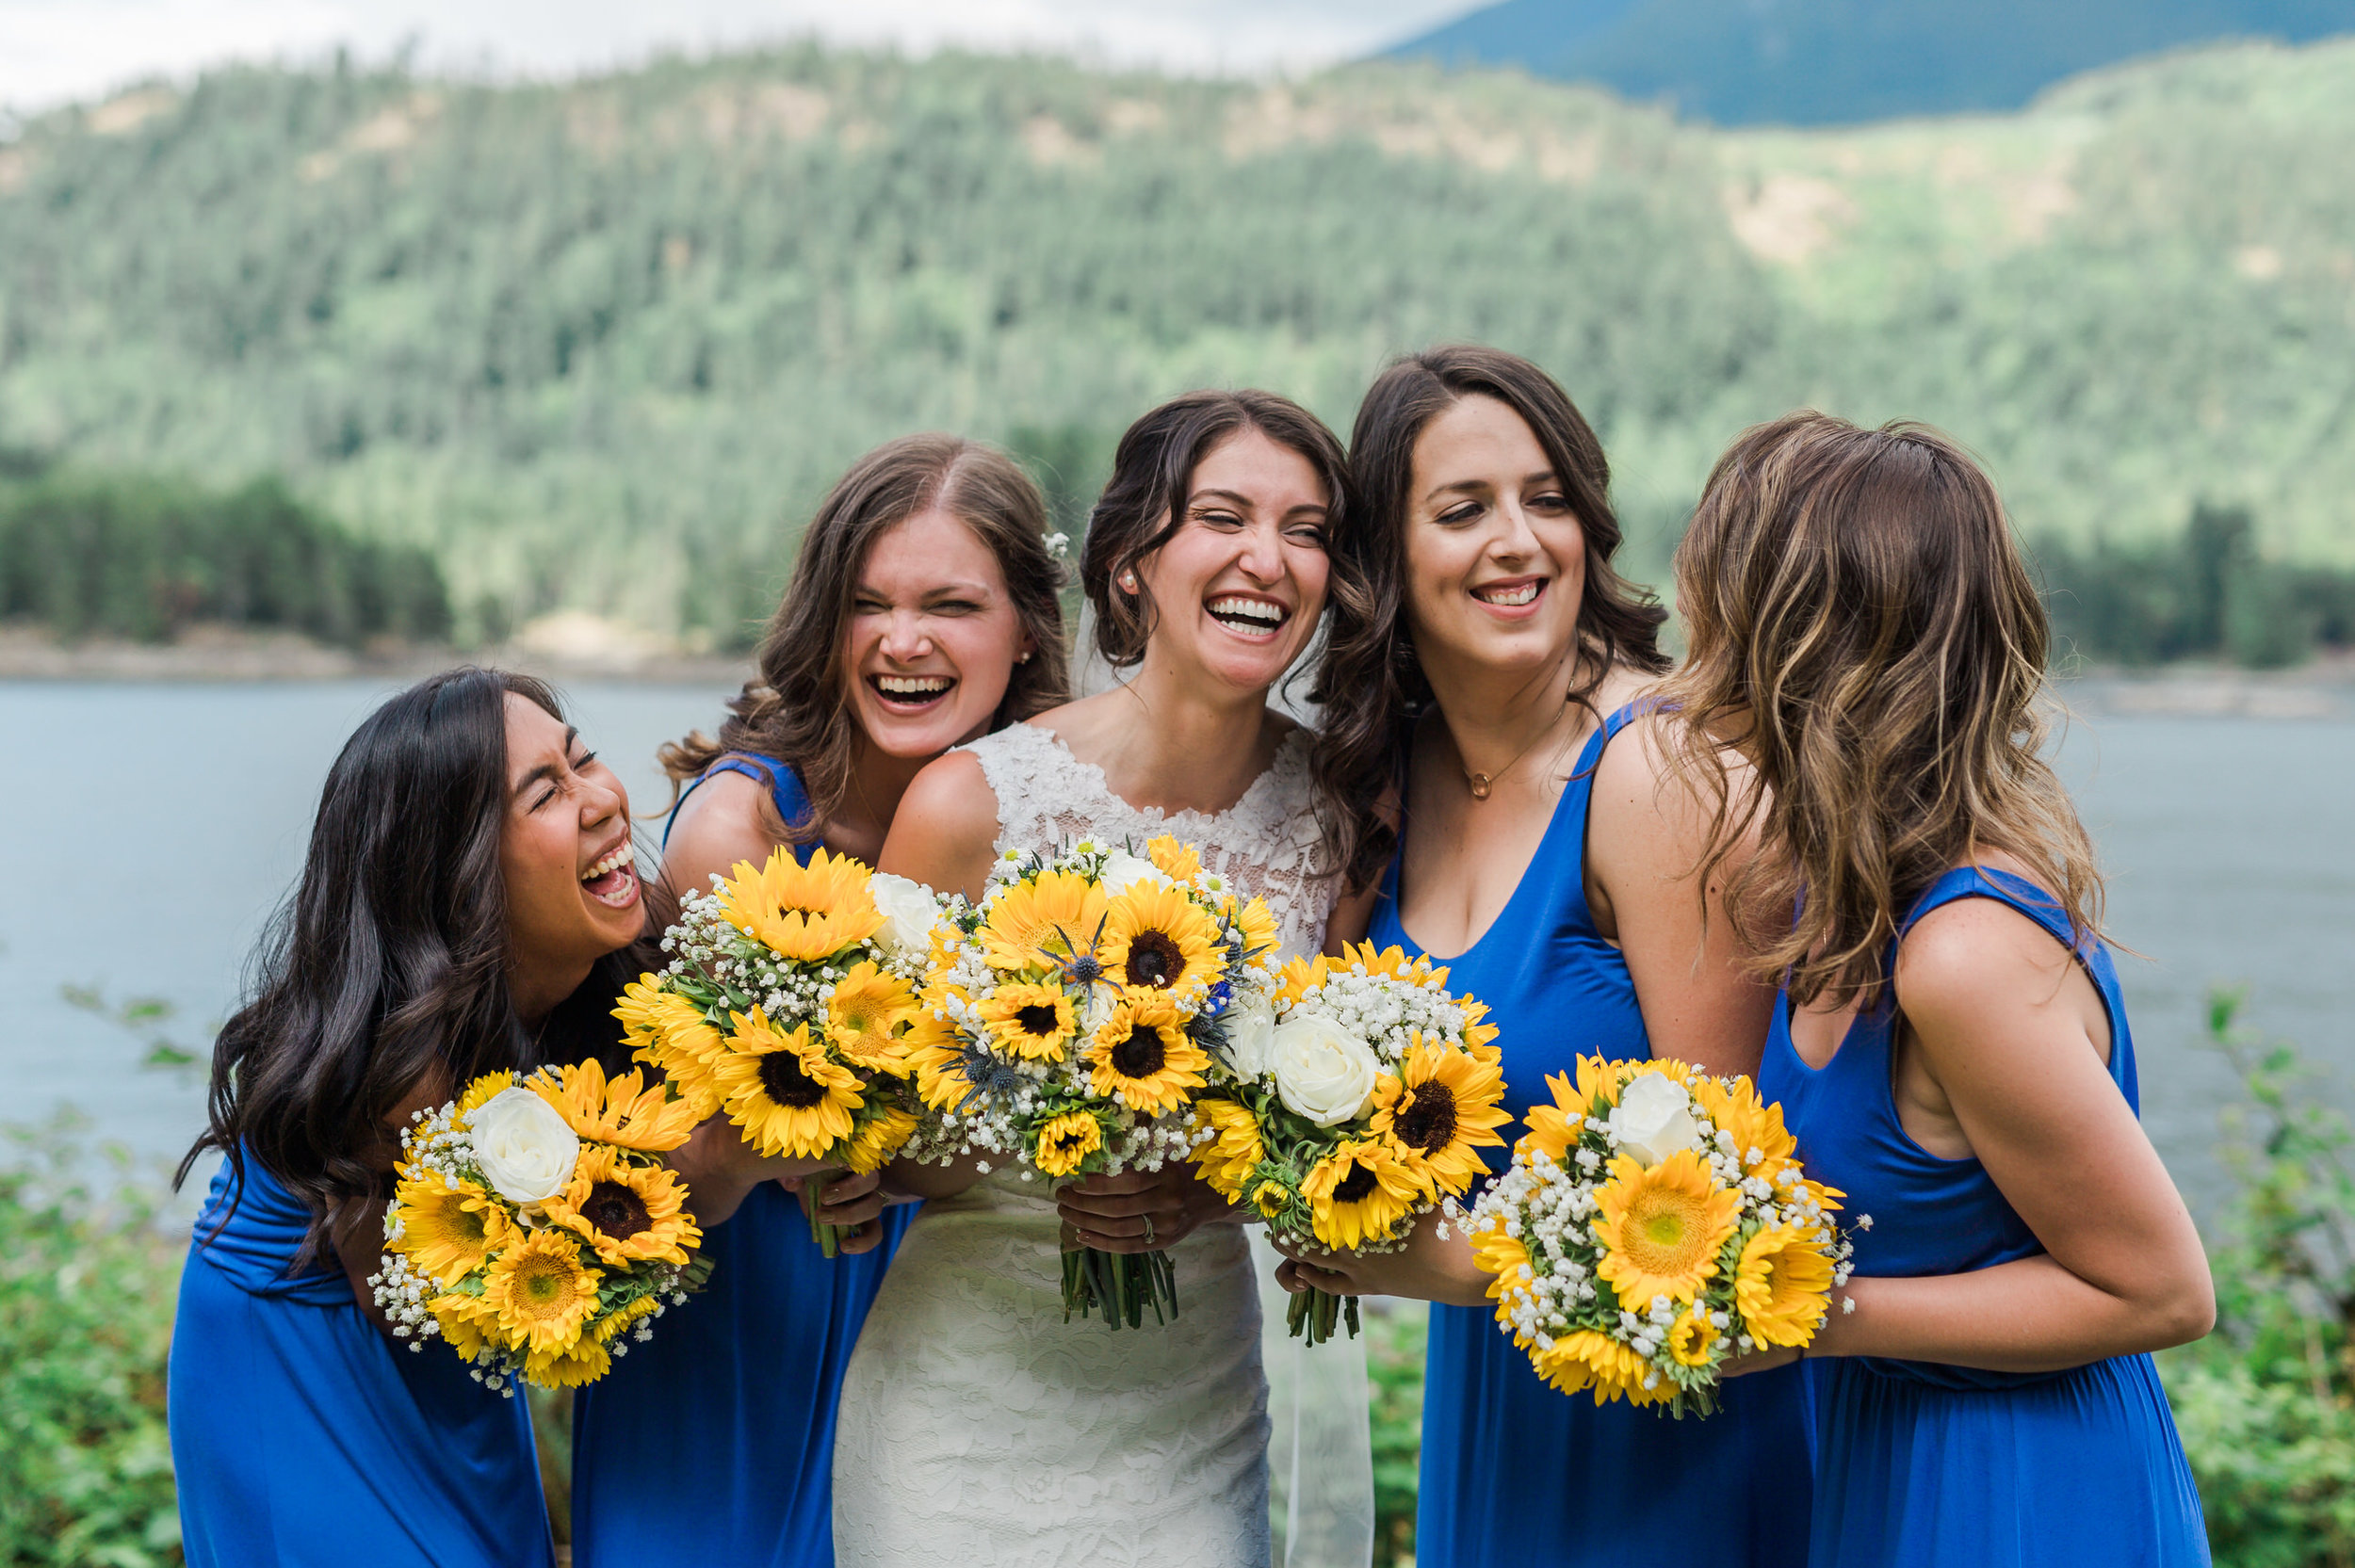 West Coast Wilderness Lodge Wedding Photos - Vancouver Wedding Photographer & Videographer - Sunshine Coast Wedding Photos - Sunshine Coast Wedding Photographer - Jennifer Picard Photography - IMG_8968.jpg